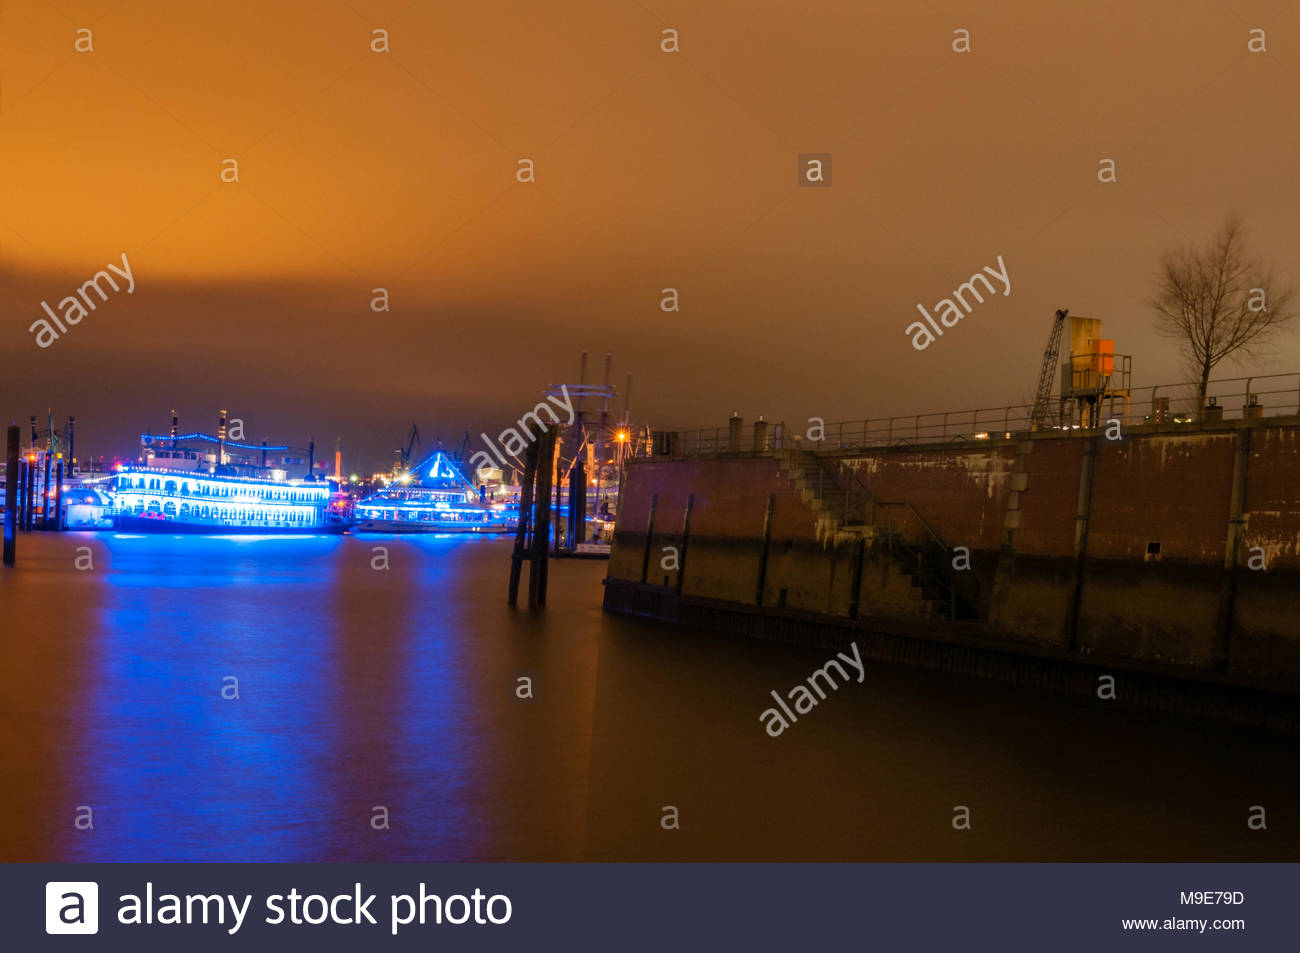 Hamburg, Germany - January 24, 2014: View at anchored ships at low tide at Blue port Festival at night. Long exposure with blue light traces on water. - Stock Image